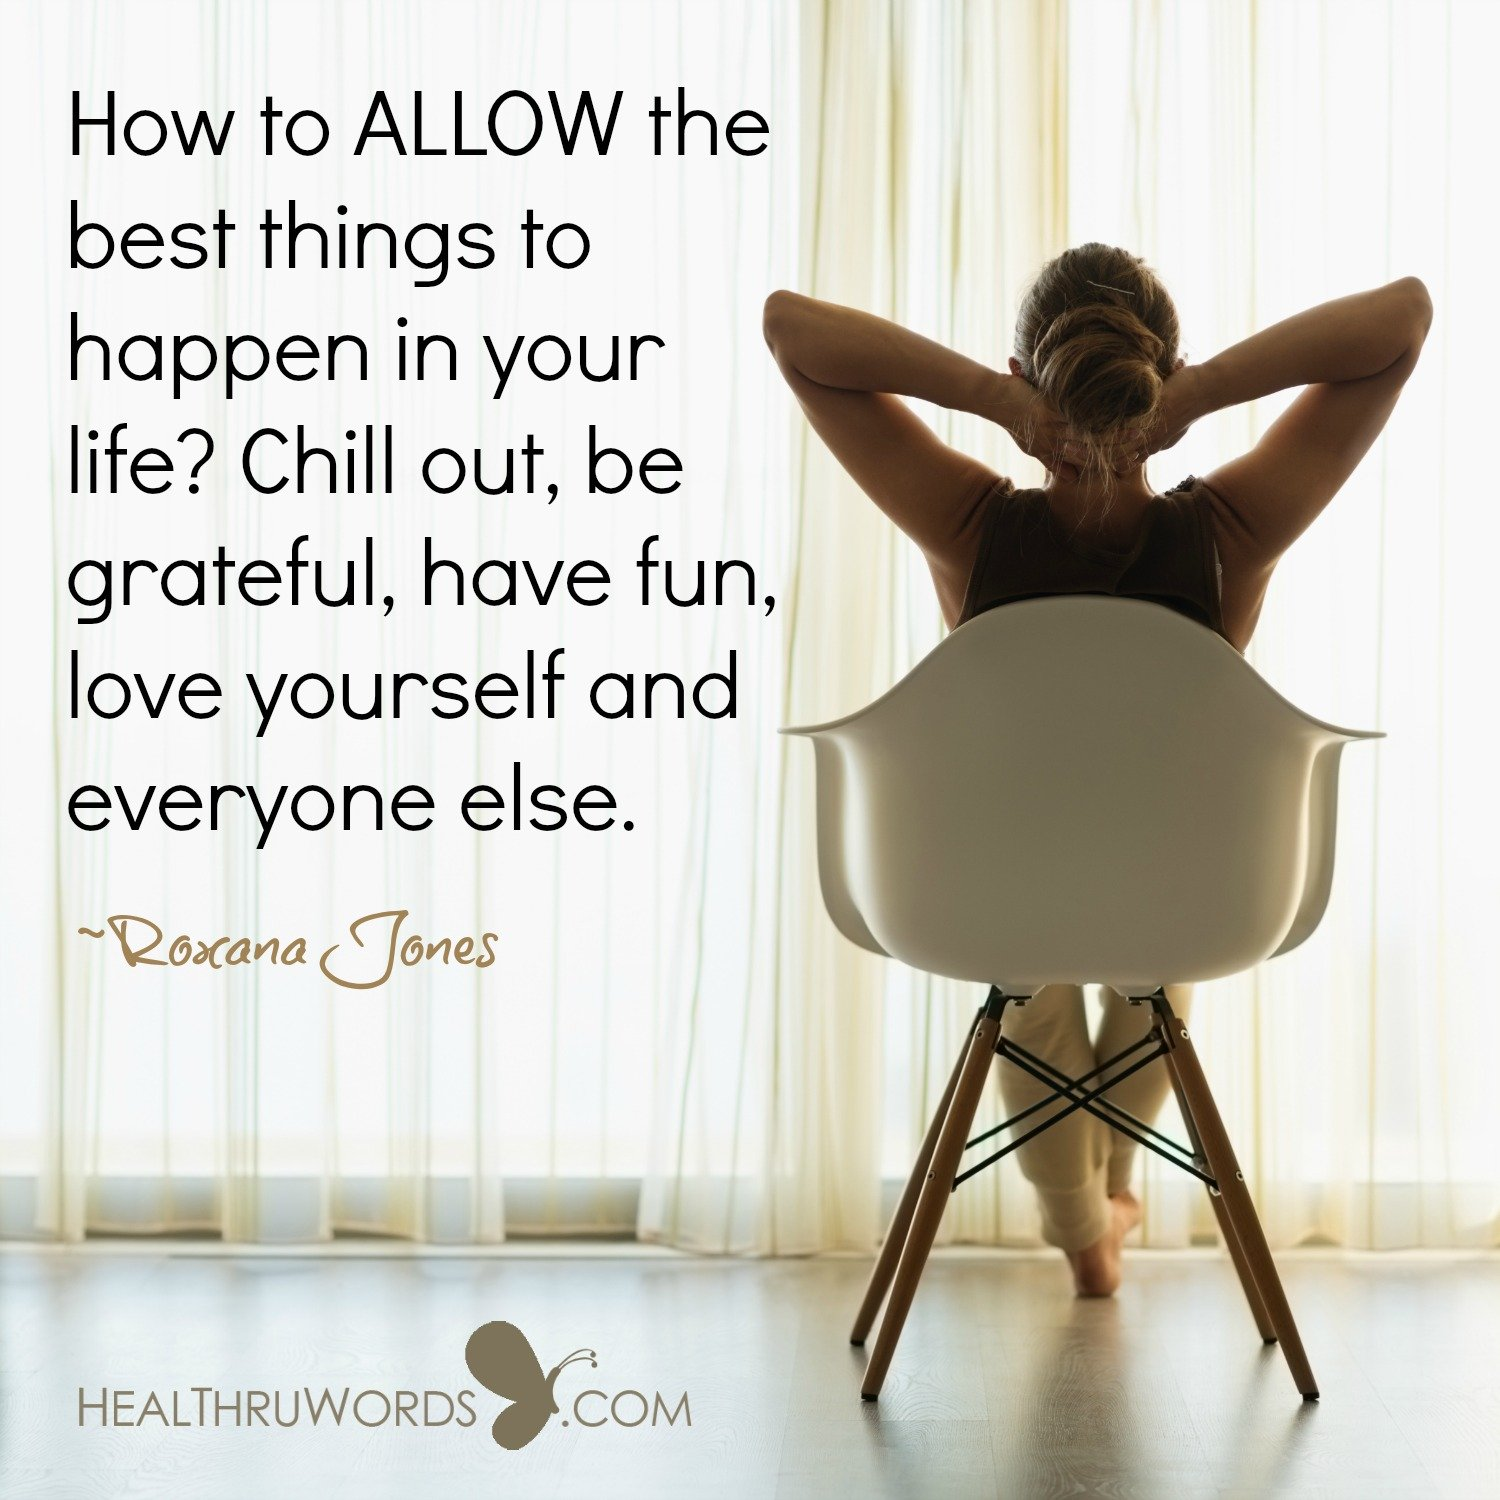 Inspirational Image: Allowing the Best